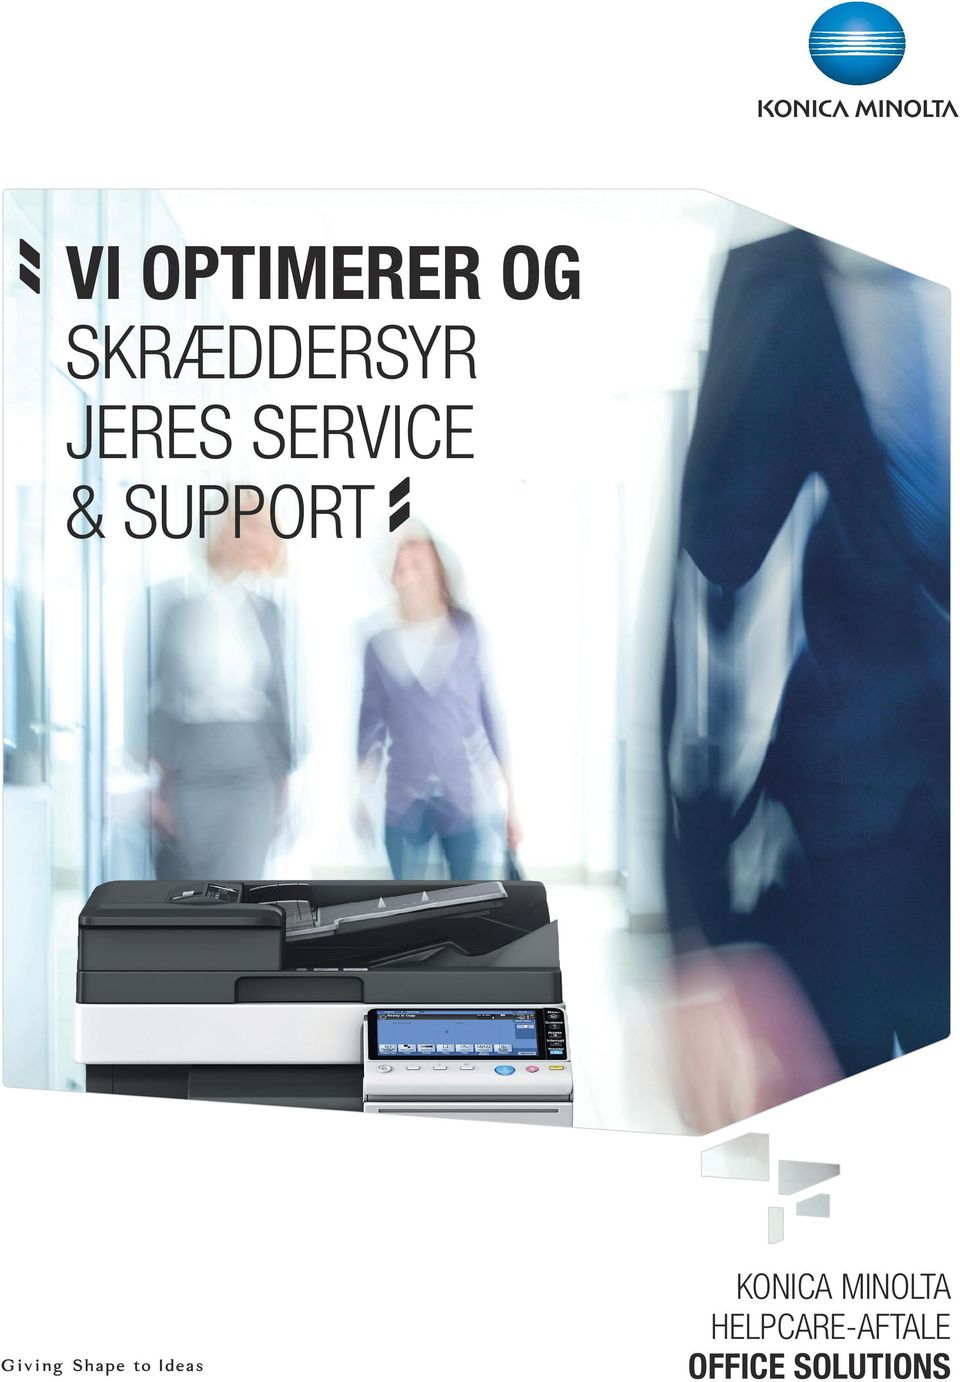 SERVICE & SUPPORT KONICA